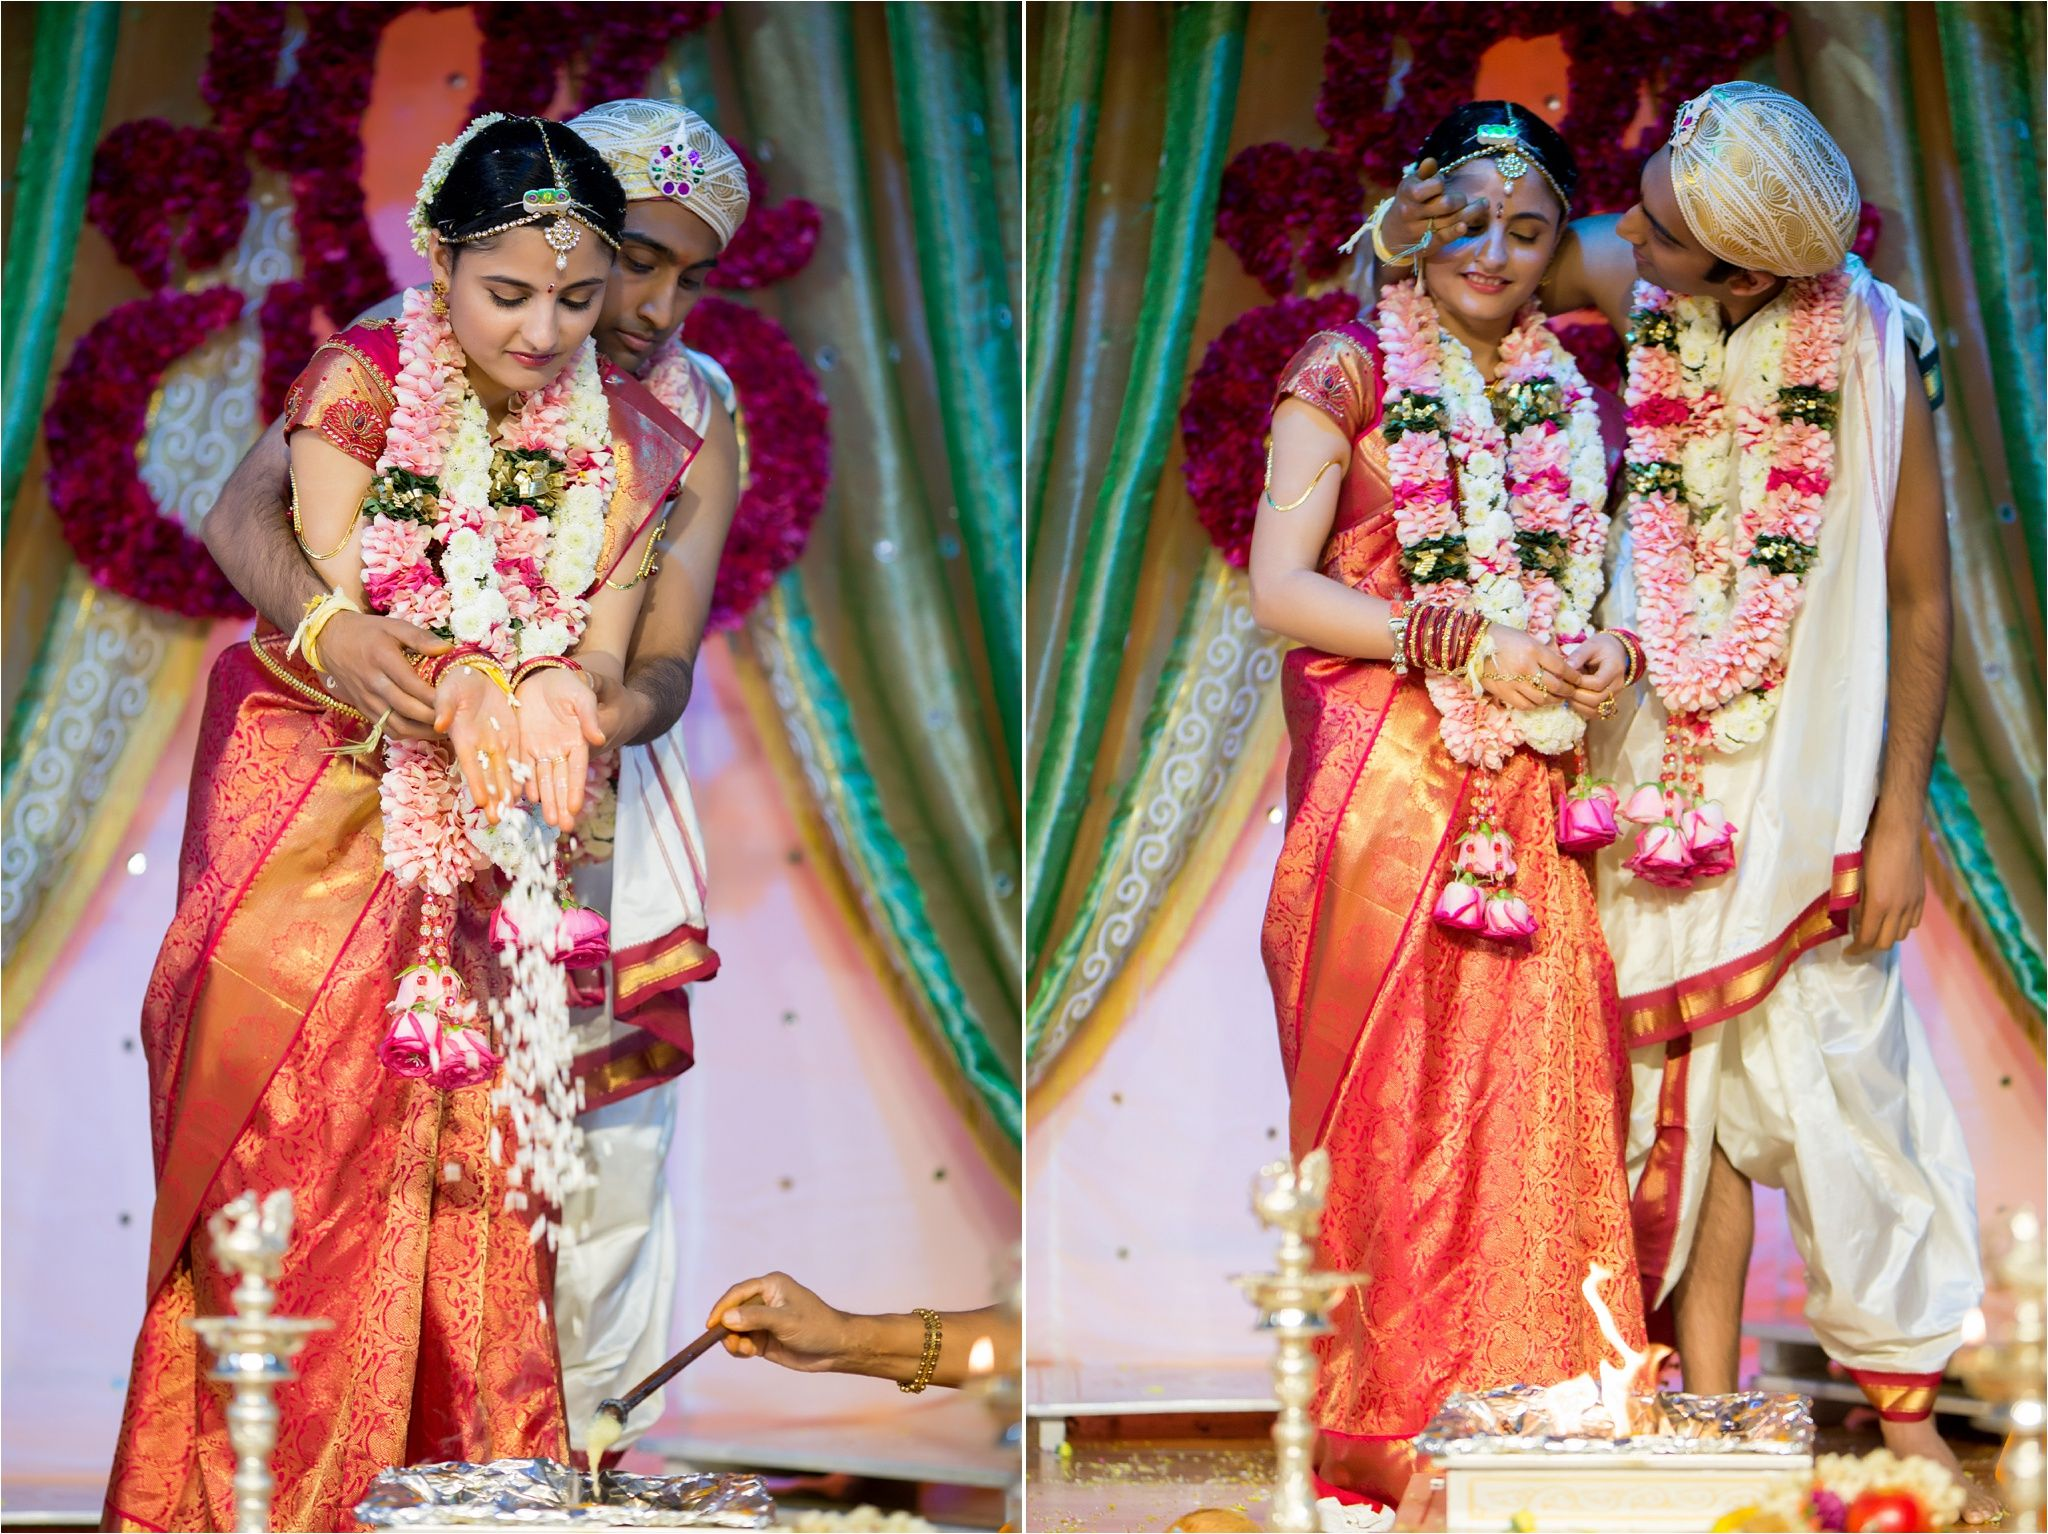 Find your telugu bride or groom on Telugu matrimony website like